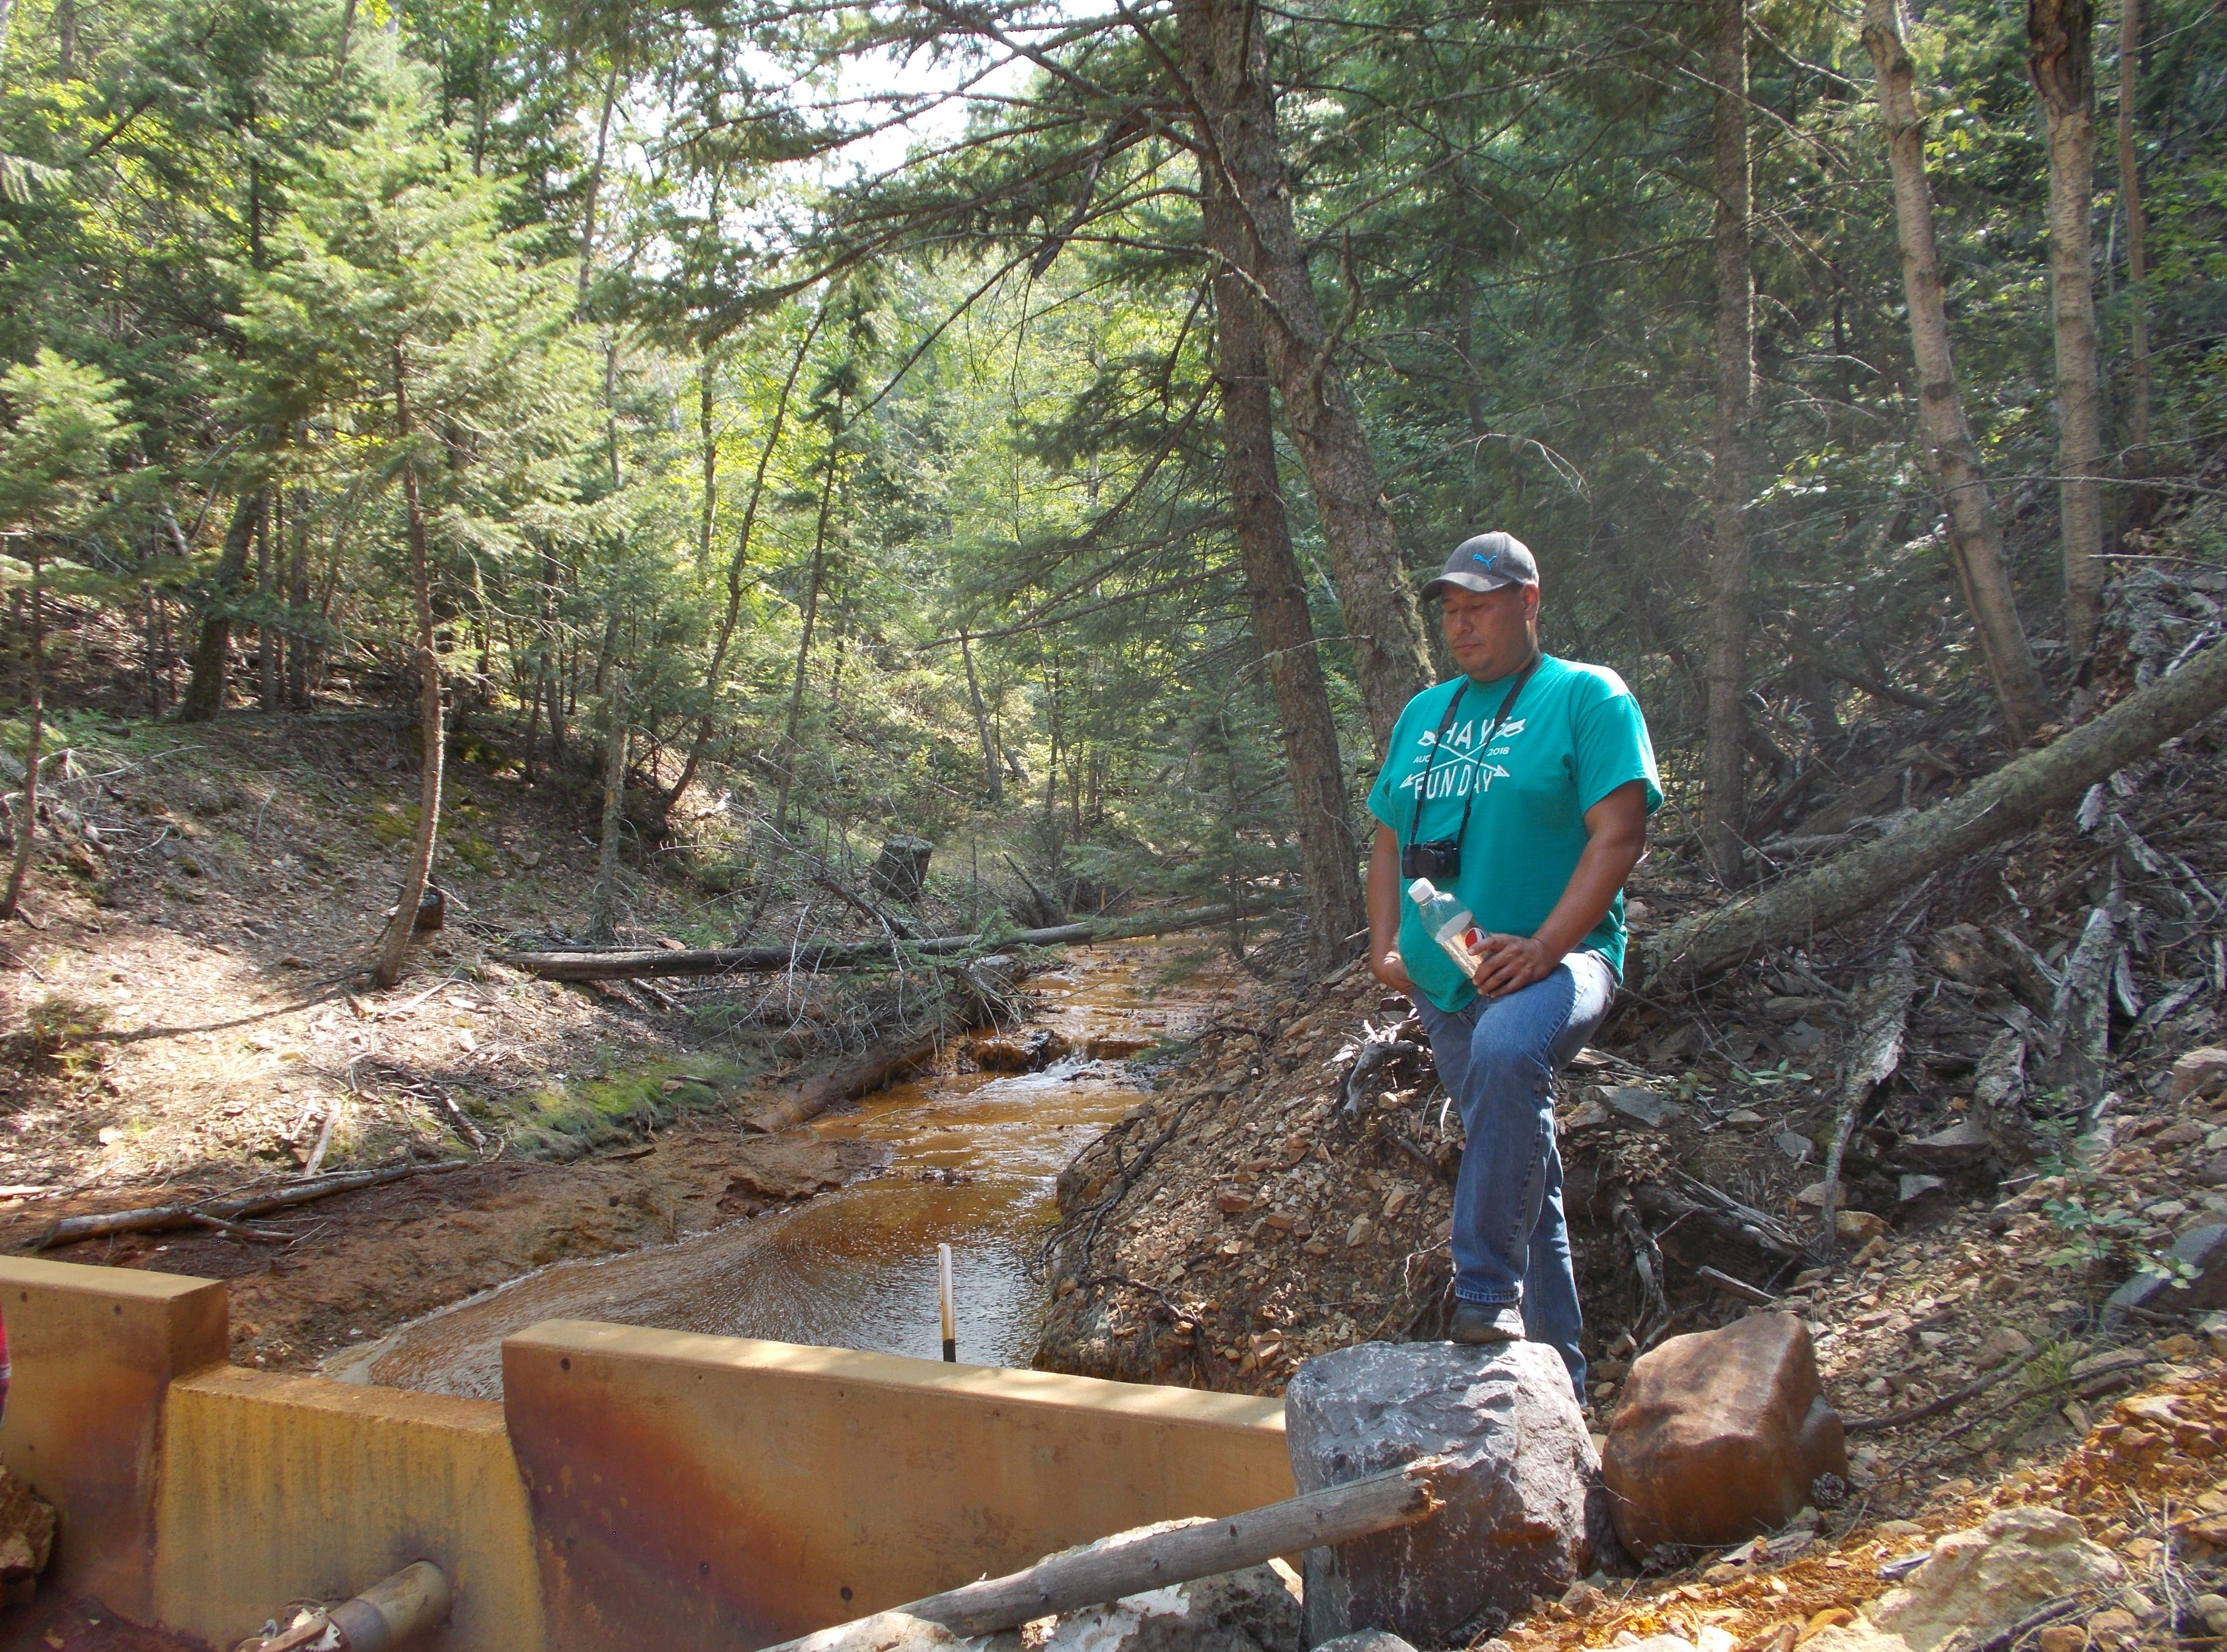 Mitchell Healy, coordinator of the Fort Belknap Indian Community's Water Quality Program, stands near a creek polluted with acid rock drainage. Reservation water quality officials say pollution has made its way into reservation streams.